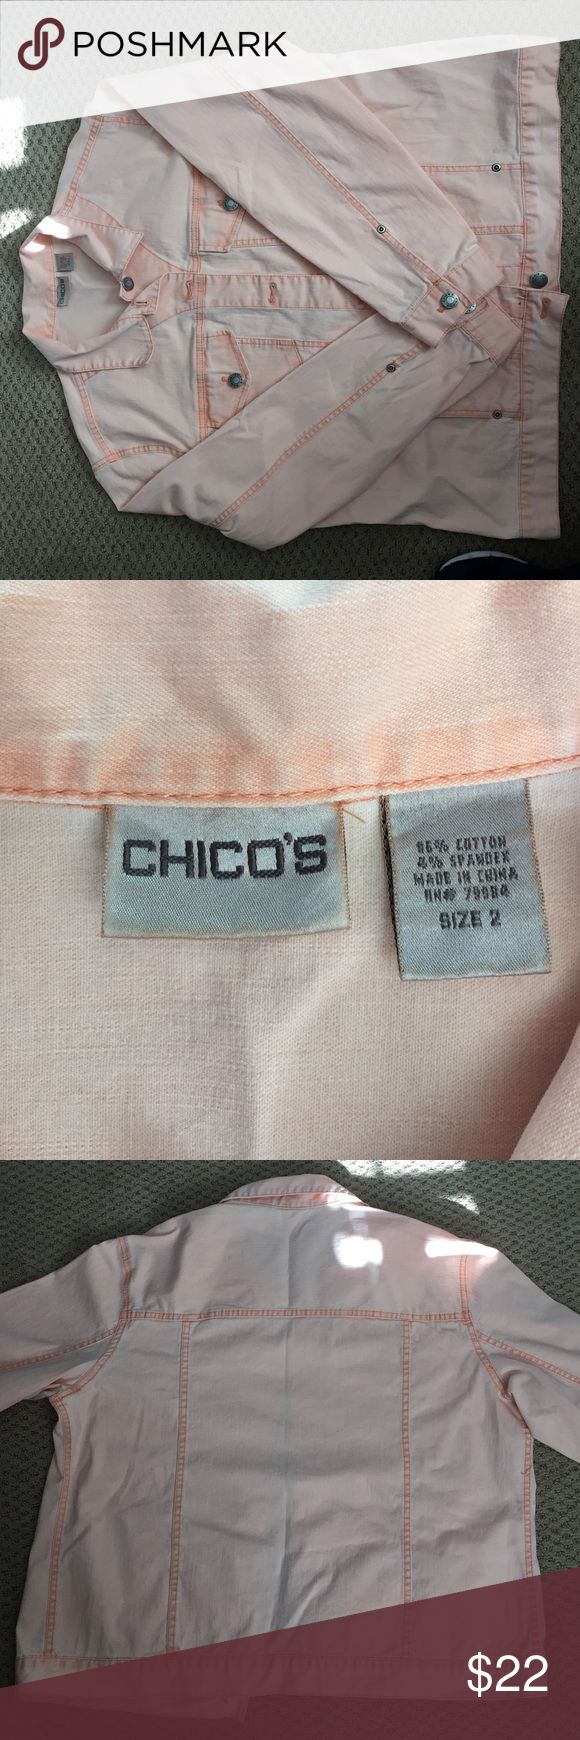 "Chico's jean jacket Chico's size 2 peach jean jacket. Length is approximately 22"" and armpit to armpit is 22.5"". Matching pants free. Chico's Jackets & Coats Jean Jackets"